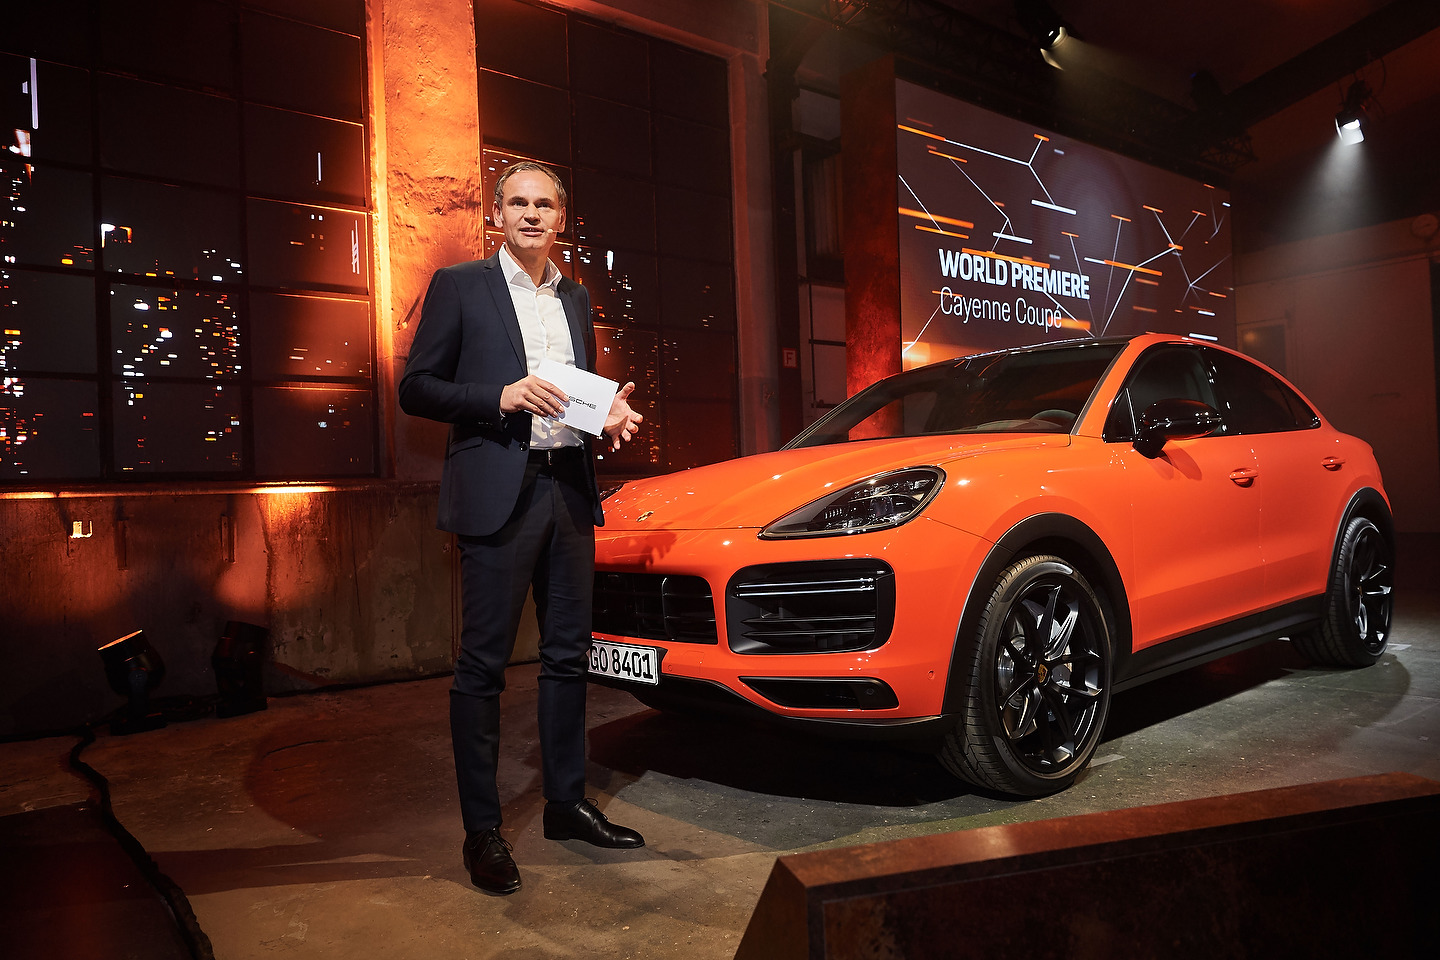 Oliver Blume, Chairman of the Executive Board of Porsche AG, presenting the new Cayenne Turbo CoupŽ